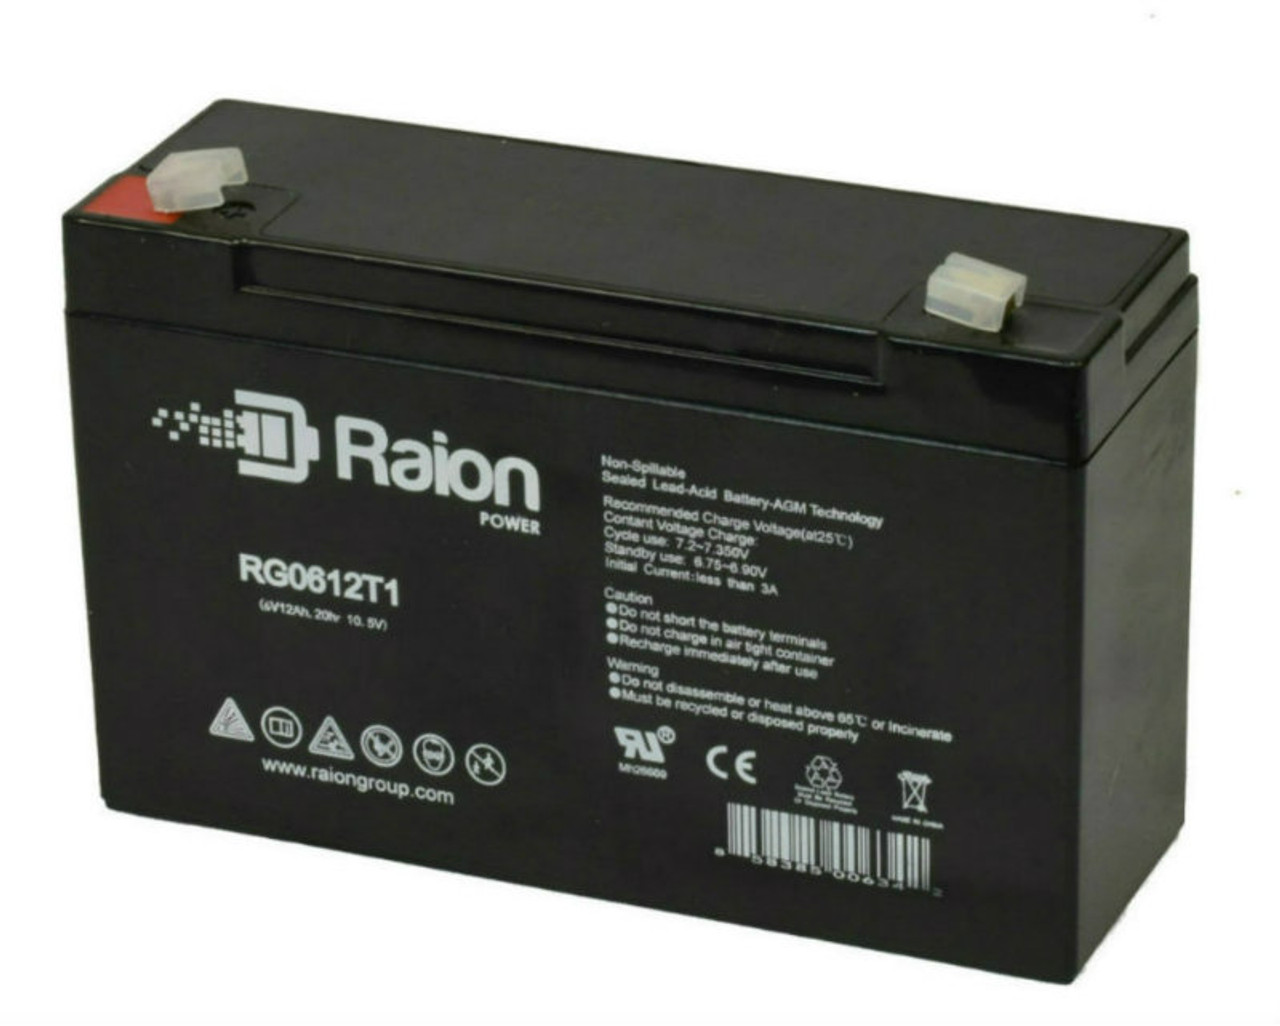 Raion Power RG06120T1 Replacement Battery Pack for Chloride 1000010078 emergency light